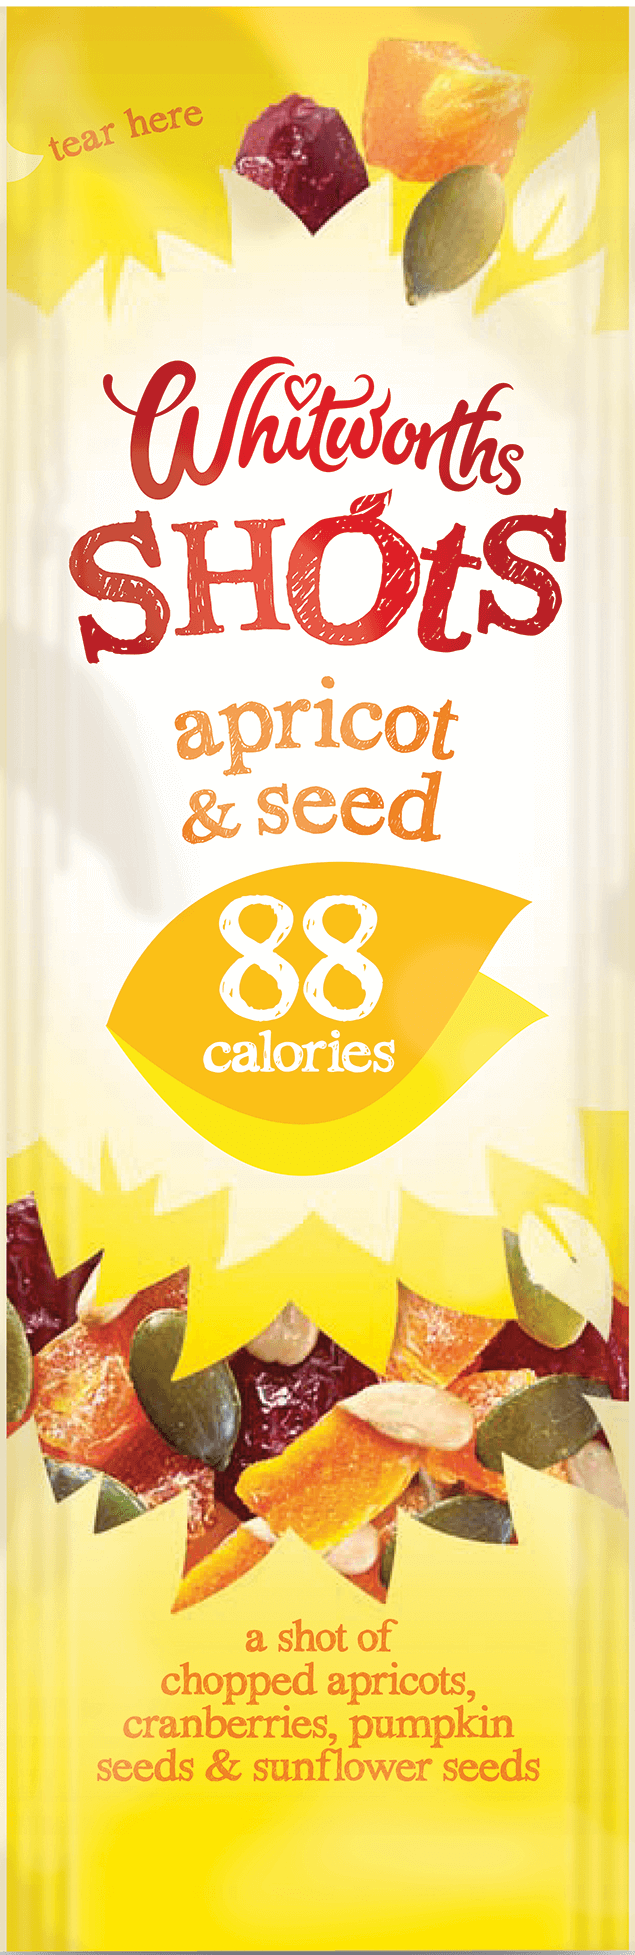 Whitworths Shots - Apricot & Seed (88 Calories)